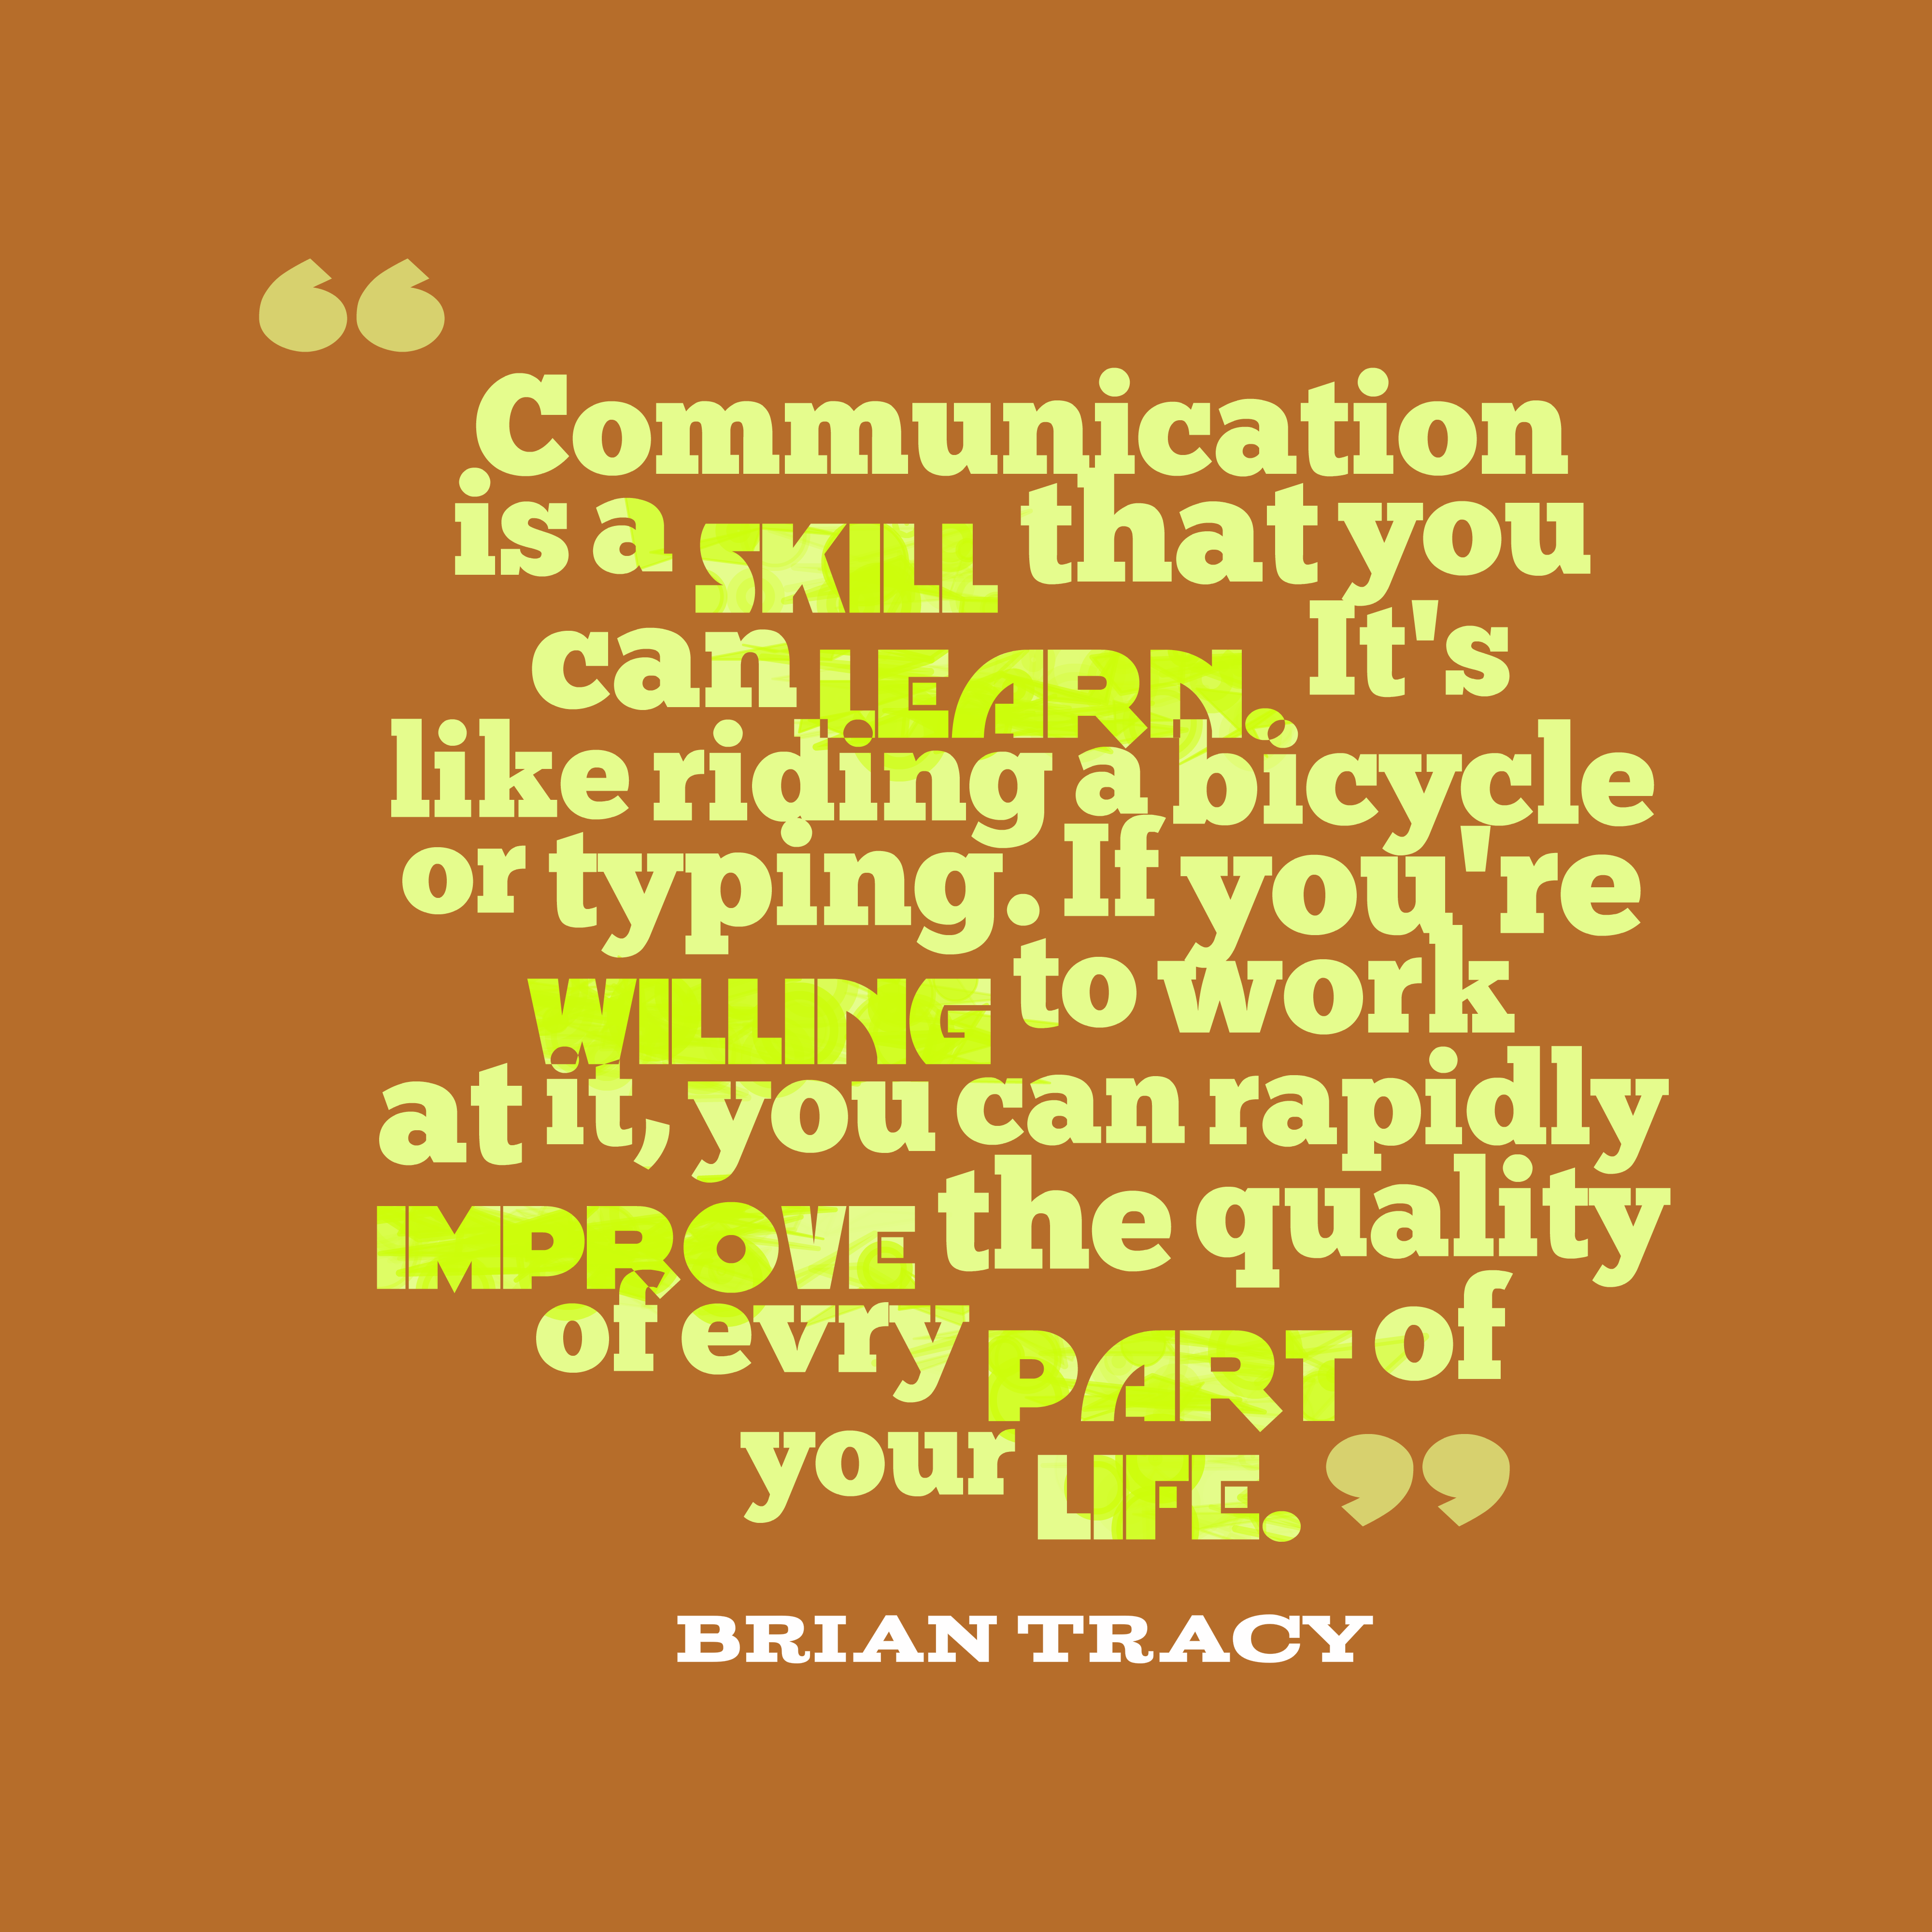 Quality Of Work Quotes: Picture » Brian Tracy Quote About Communication